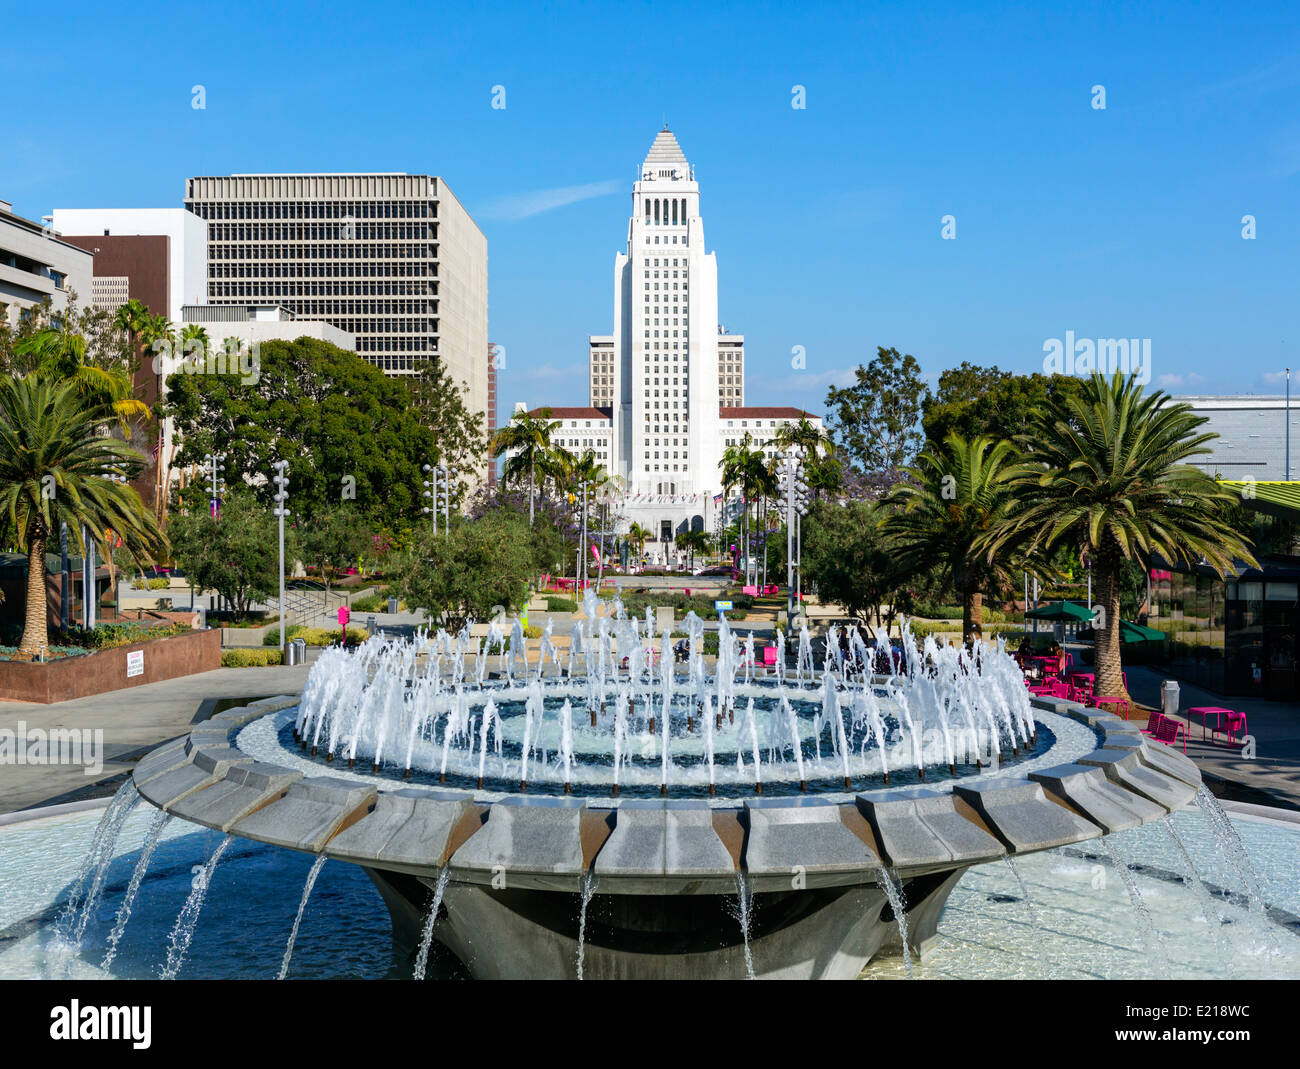 Los Angeles City Hall viewed from Grand Park in downtown LA, California, USA - Stock Image